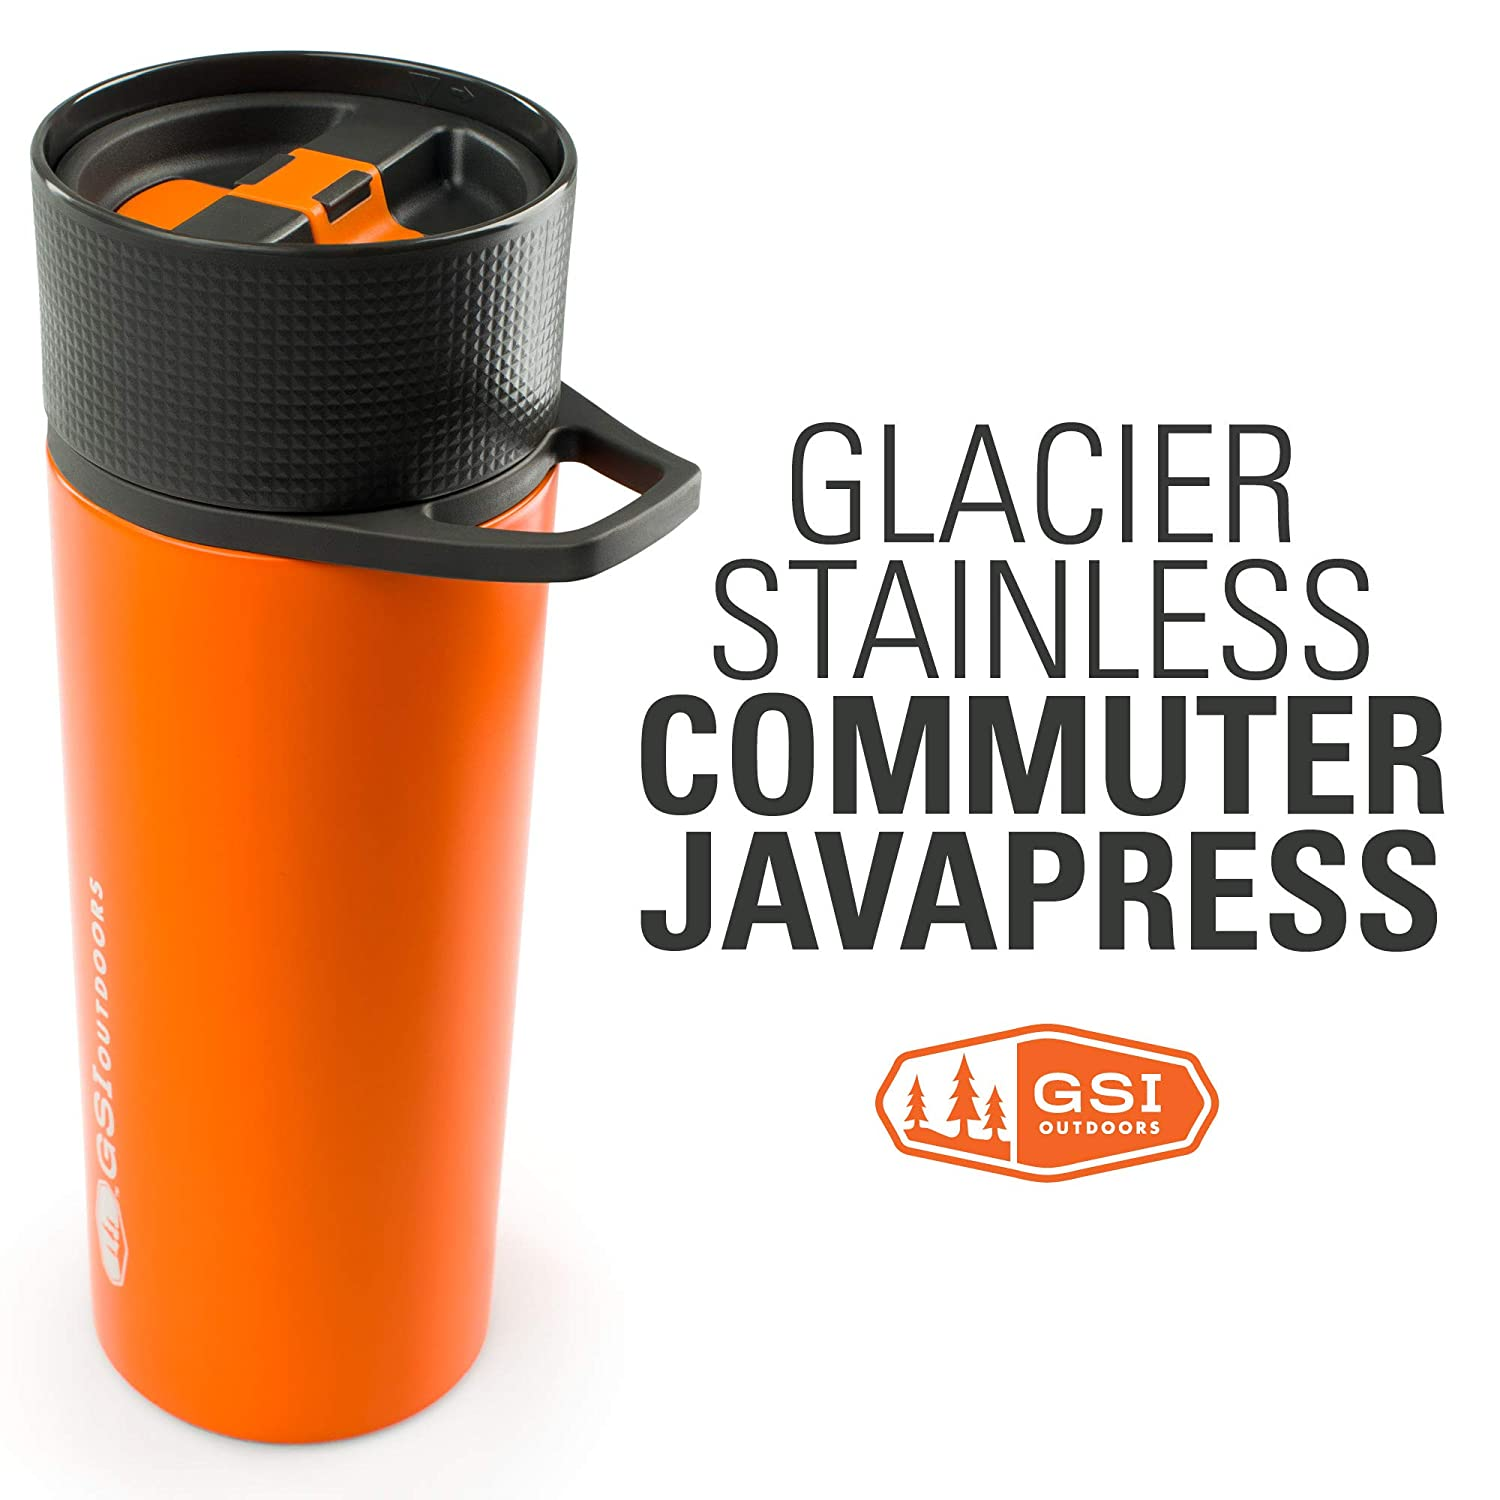 GSI Outdoors - Glacier Stainless Commuter JavaPress, French Press Coffee Mug